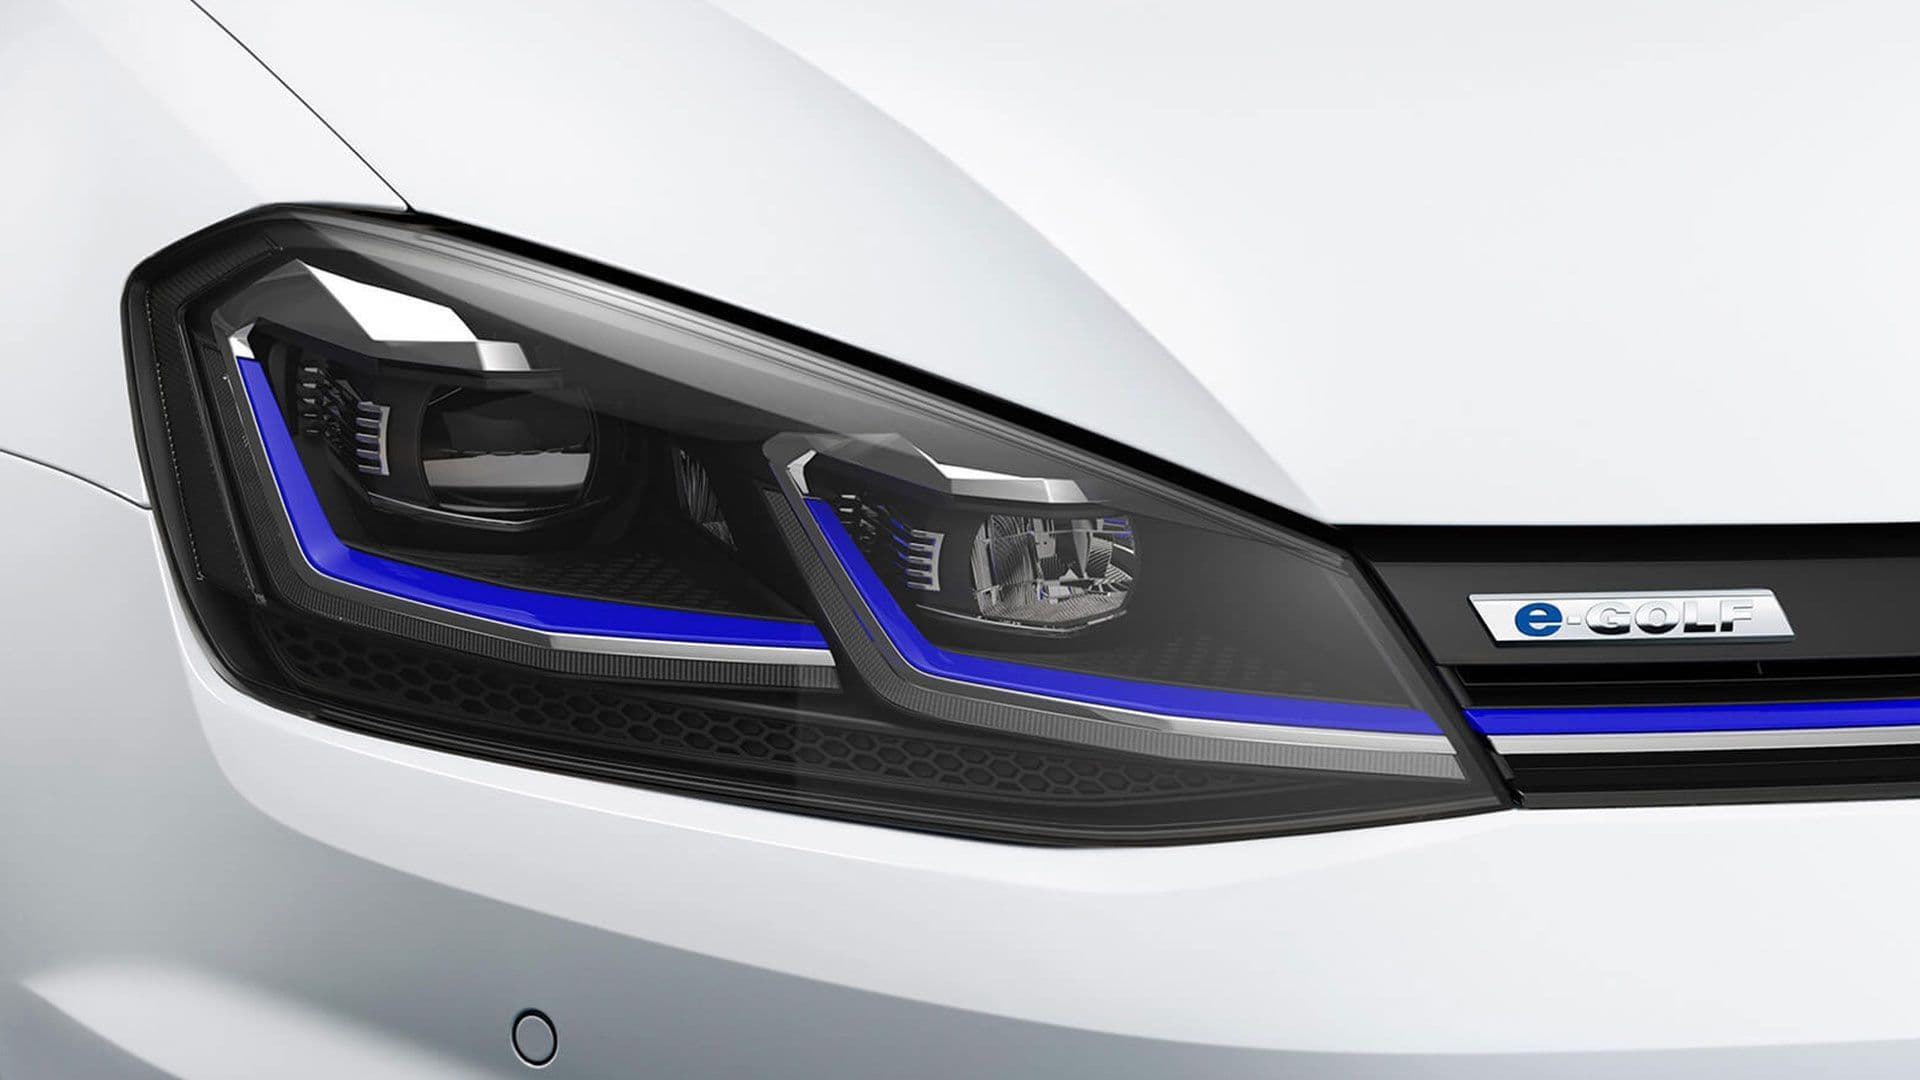 Exterior view of the Volkswagen adaptive LED headlights